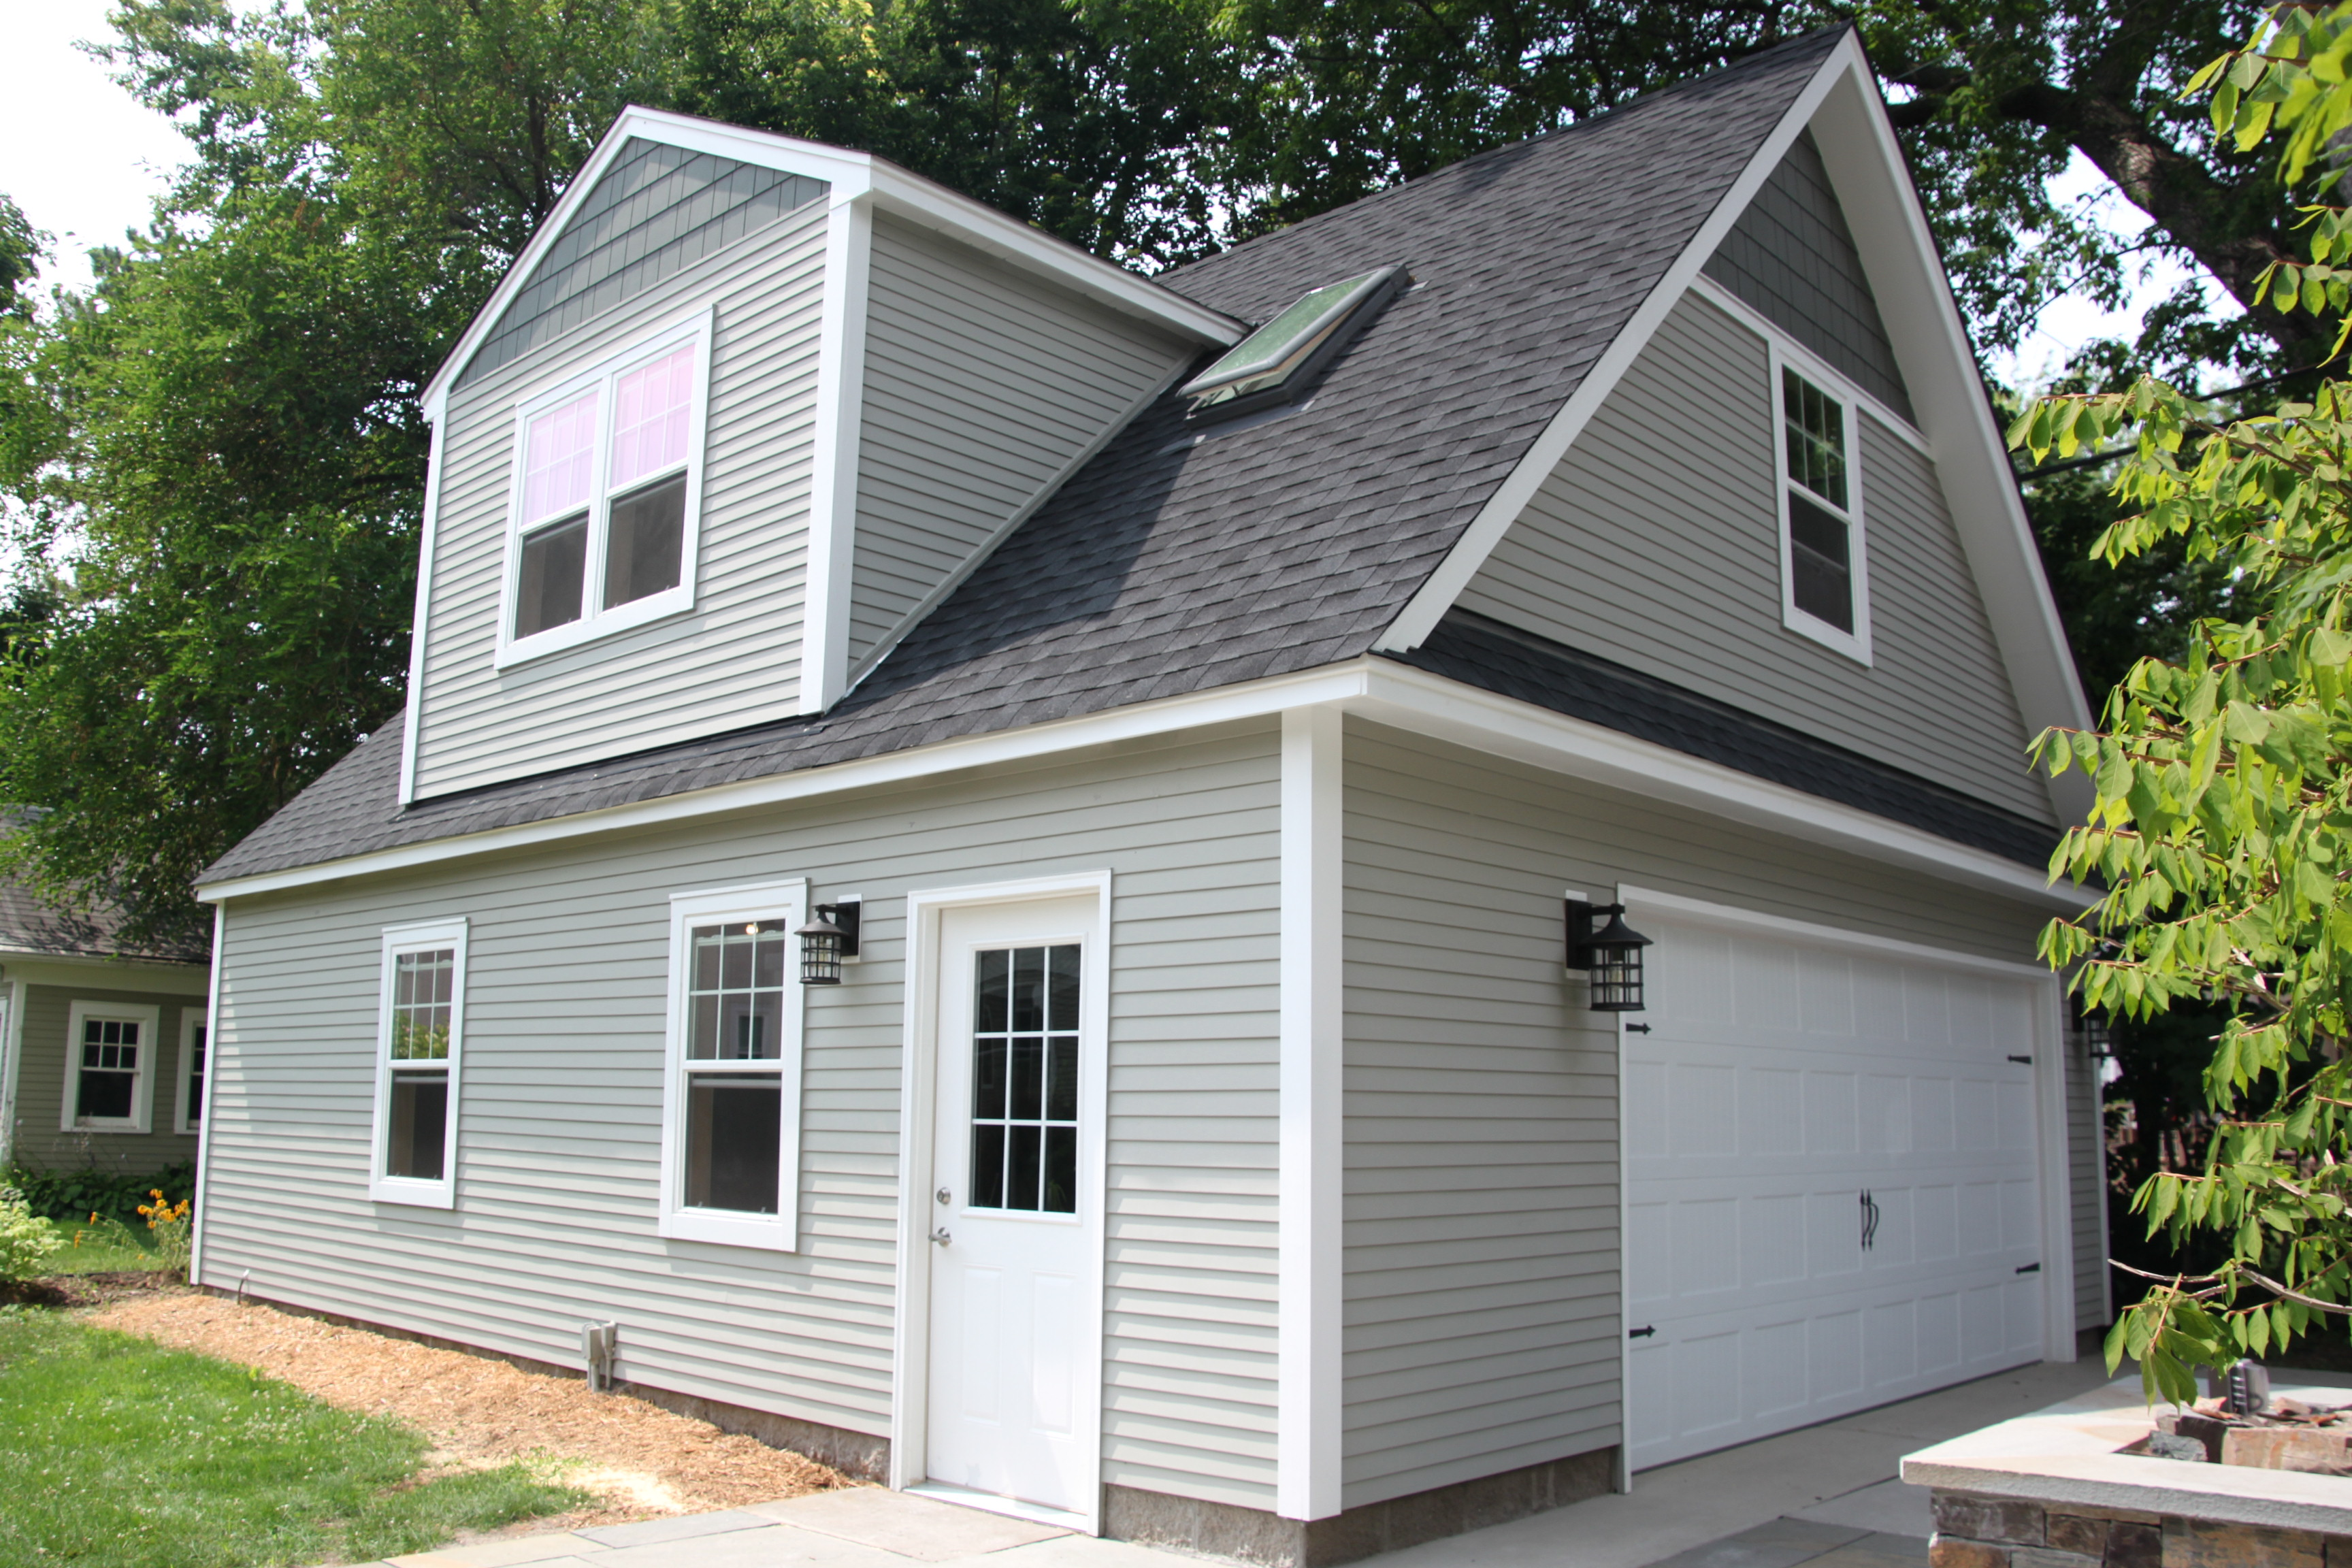 2 Car Story Garage Using Attic Trusses And Dormer & Cost Of Double Story Garage Conversion - Garage Designs